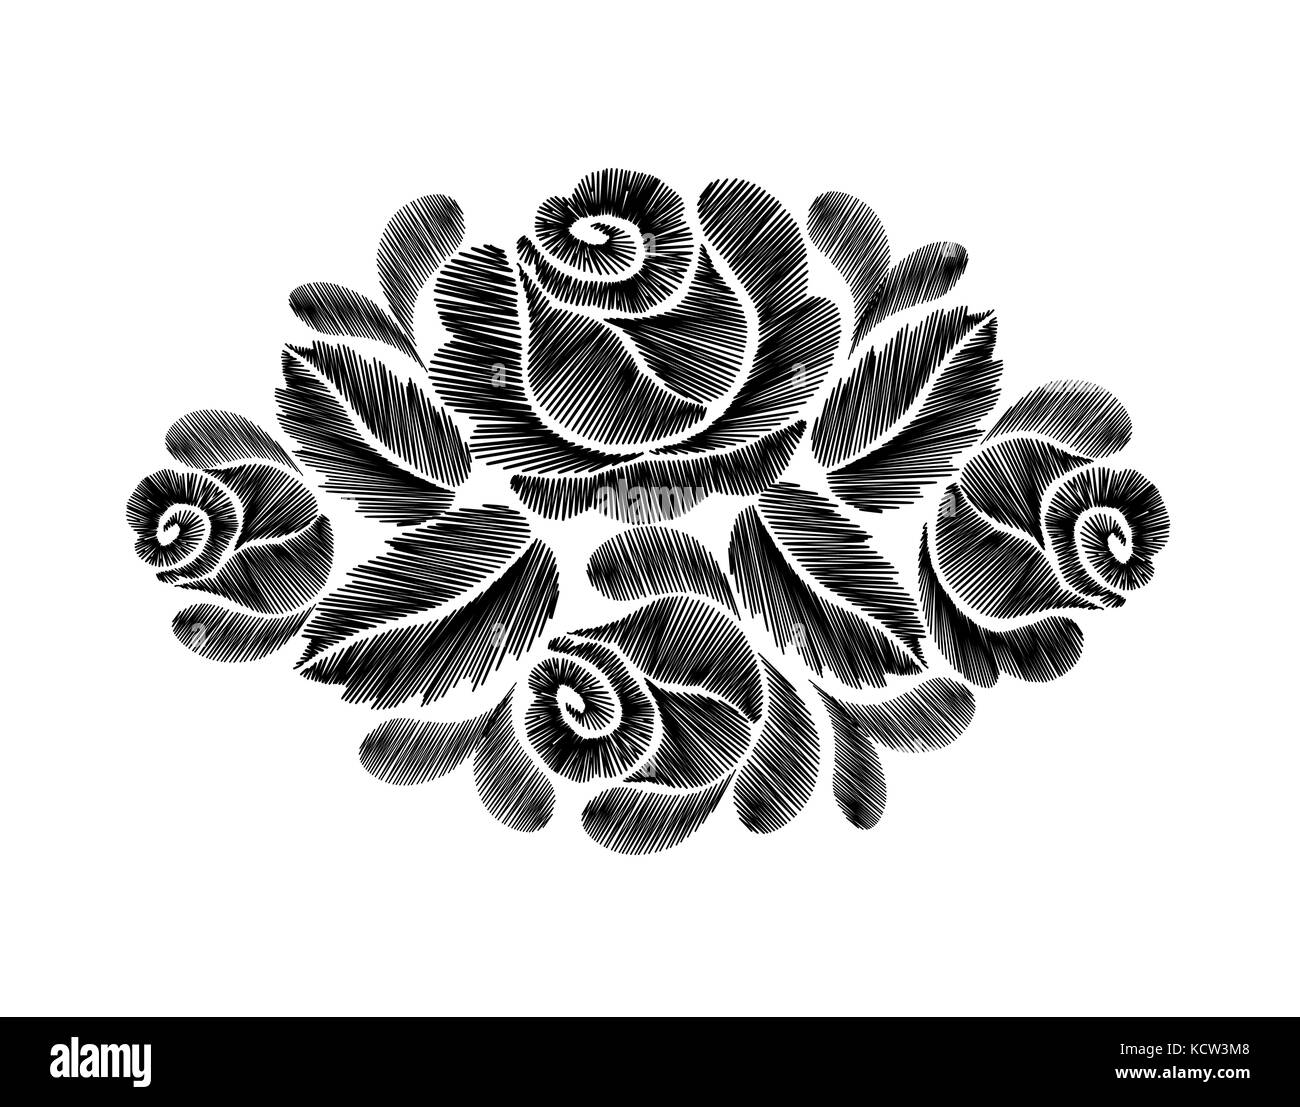 Black roses embroidery on white background ethnic flowers neck line black roses embroidery on white background ethnic flowers neck line flower design graphics fashion wearing vector mightylinksfo